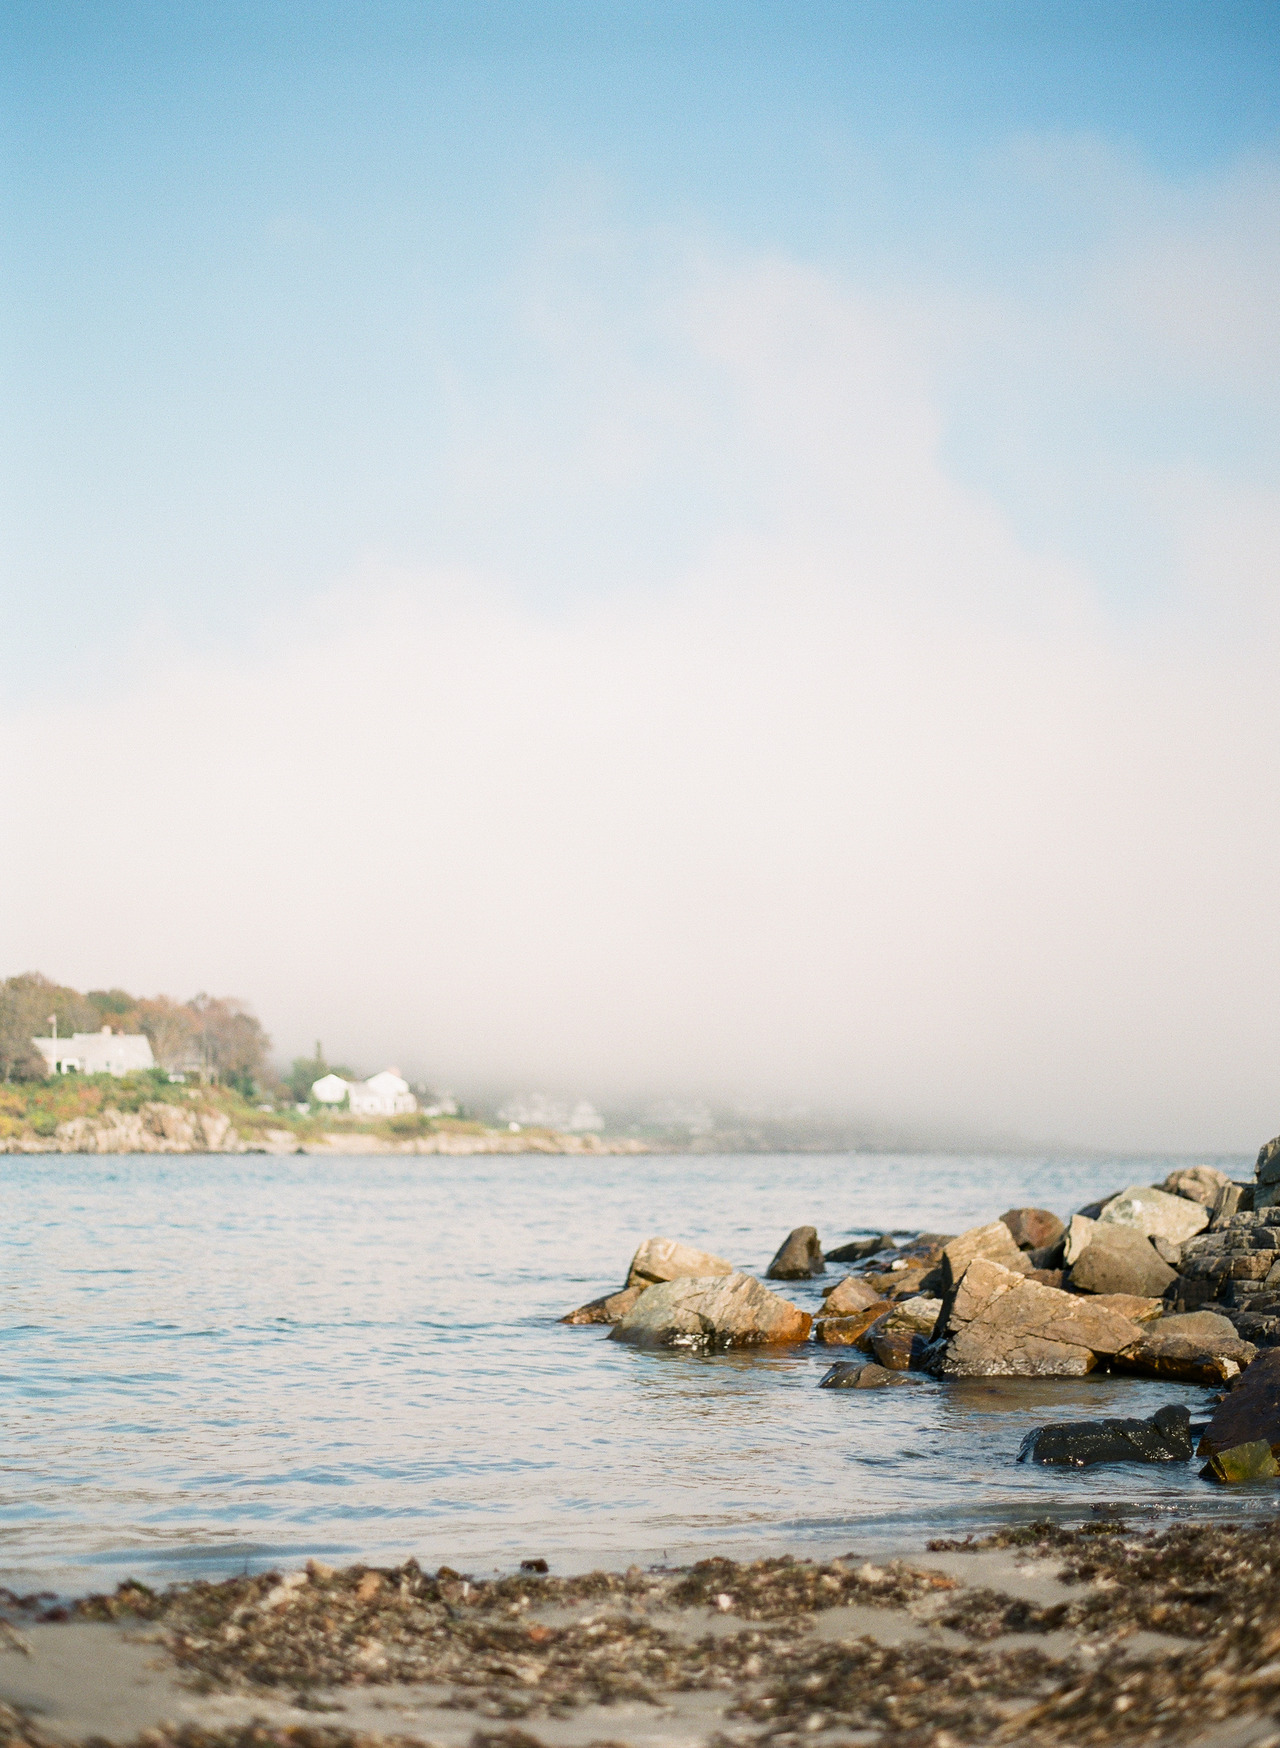 The fog rolling into York Harbor, Maine. Contax 645 | Fuji 400h | RPL